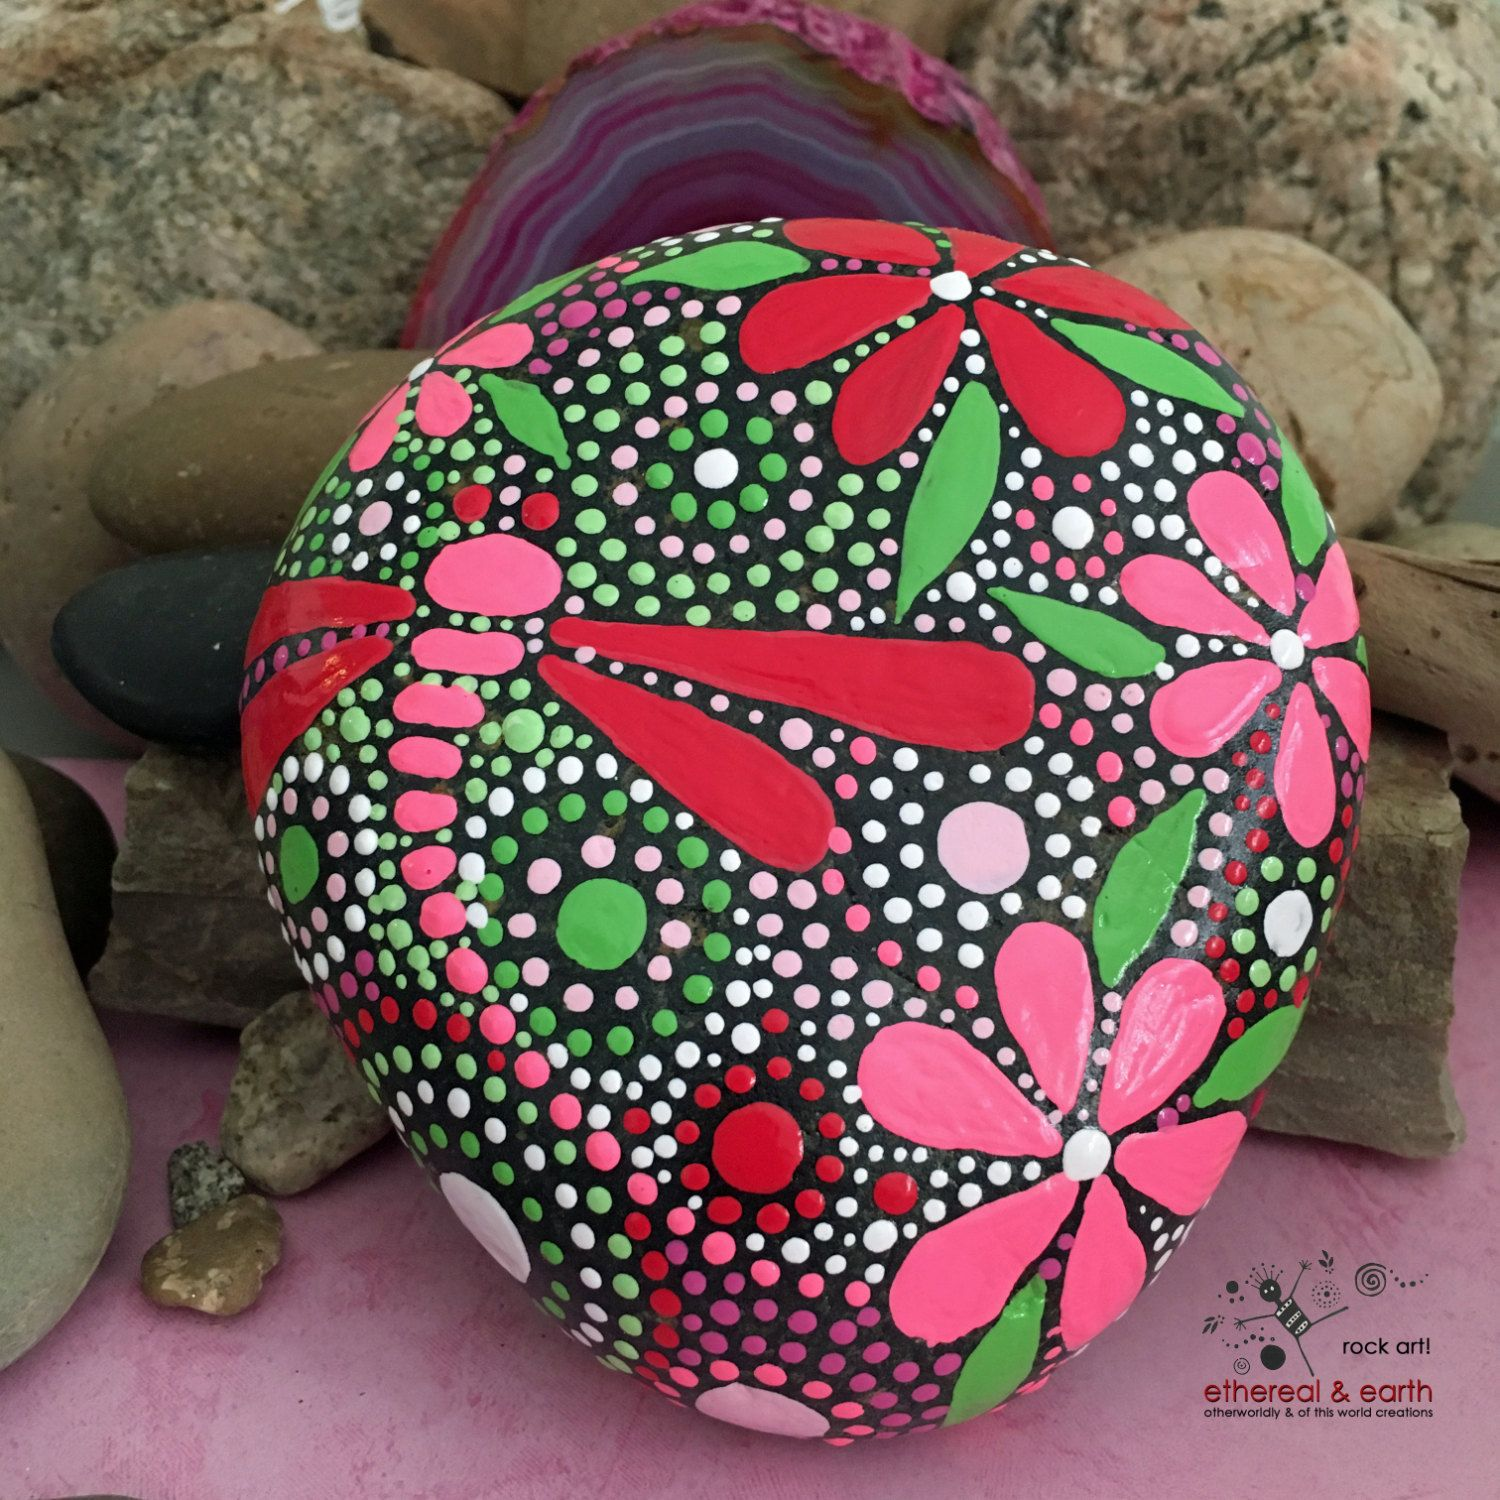 ROCK ART by ethereal & earth - otherworldly & of this world creations!  Hand Painted River Rock = fields of color collection #70 4.50 X 4.25 X 1 - 29 ounces  Dragonfly Motif - Mandala Inspired Design - Natural Home Decor - Garden Art - Housewarming Gift - Weather Resistant Lacquer Finish  As in nature no two ethereal & earth stones are alike. Each stone and its design is unique. I work with each stones shape, size, and texture to create a singular mix of art & nature. Brightly colored hand…